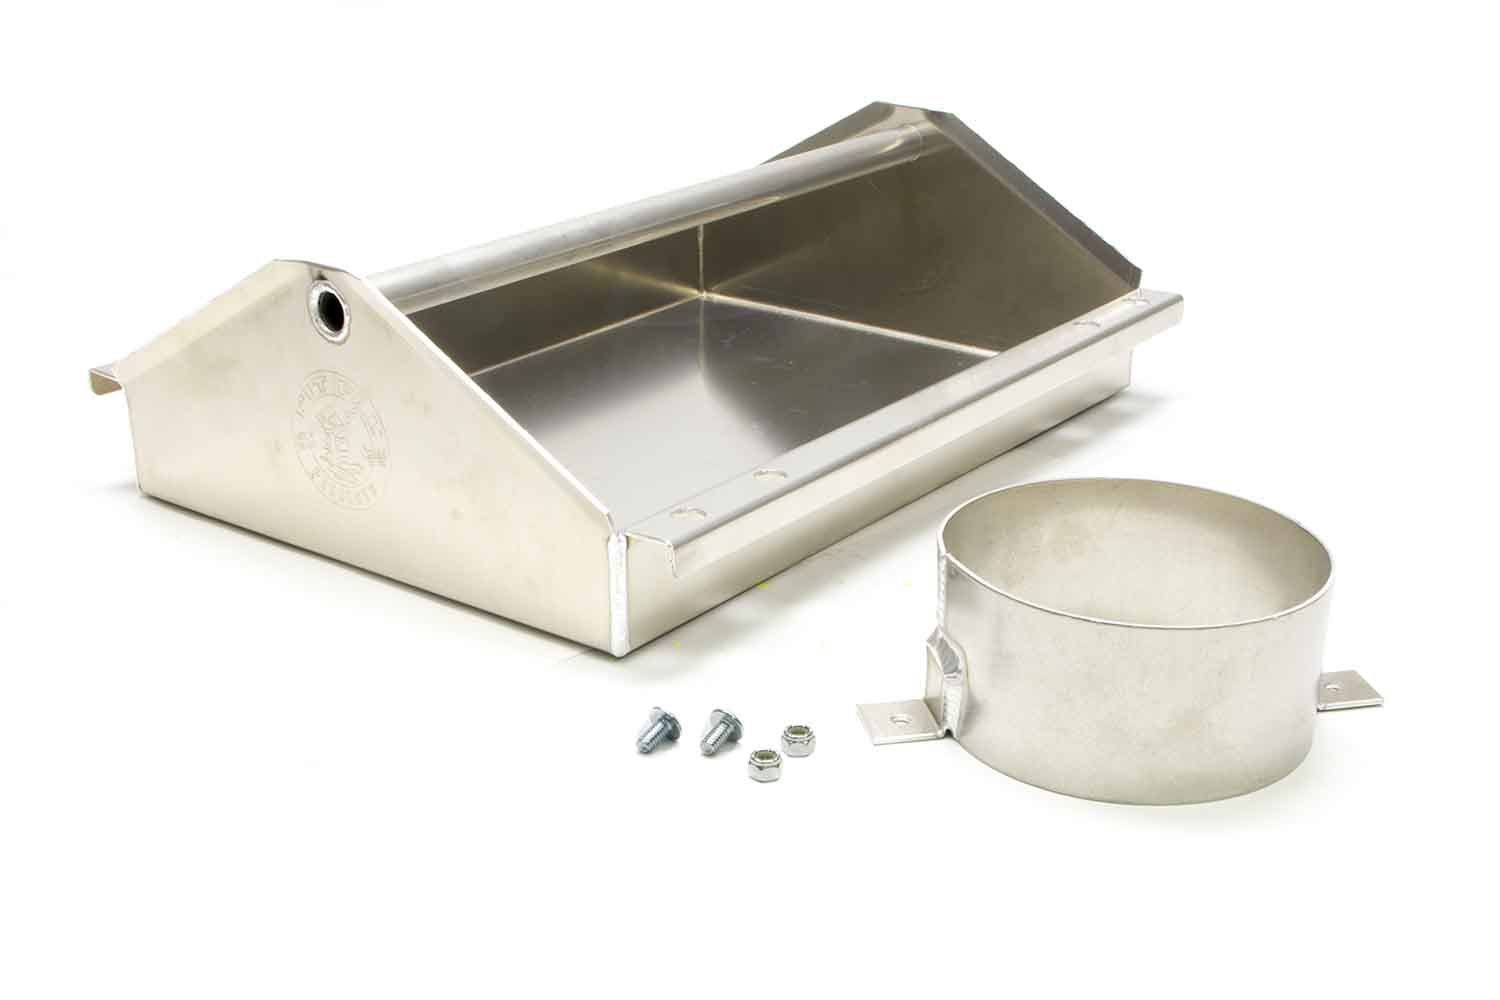 Pit Pal Products 129S Tool Tray, Carburetor, Junior, 16-1/2 x 5 x 13-1/4 in, Aluminum, Natural, 5-1/8 in Diameter Flange, Each